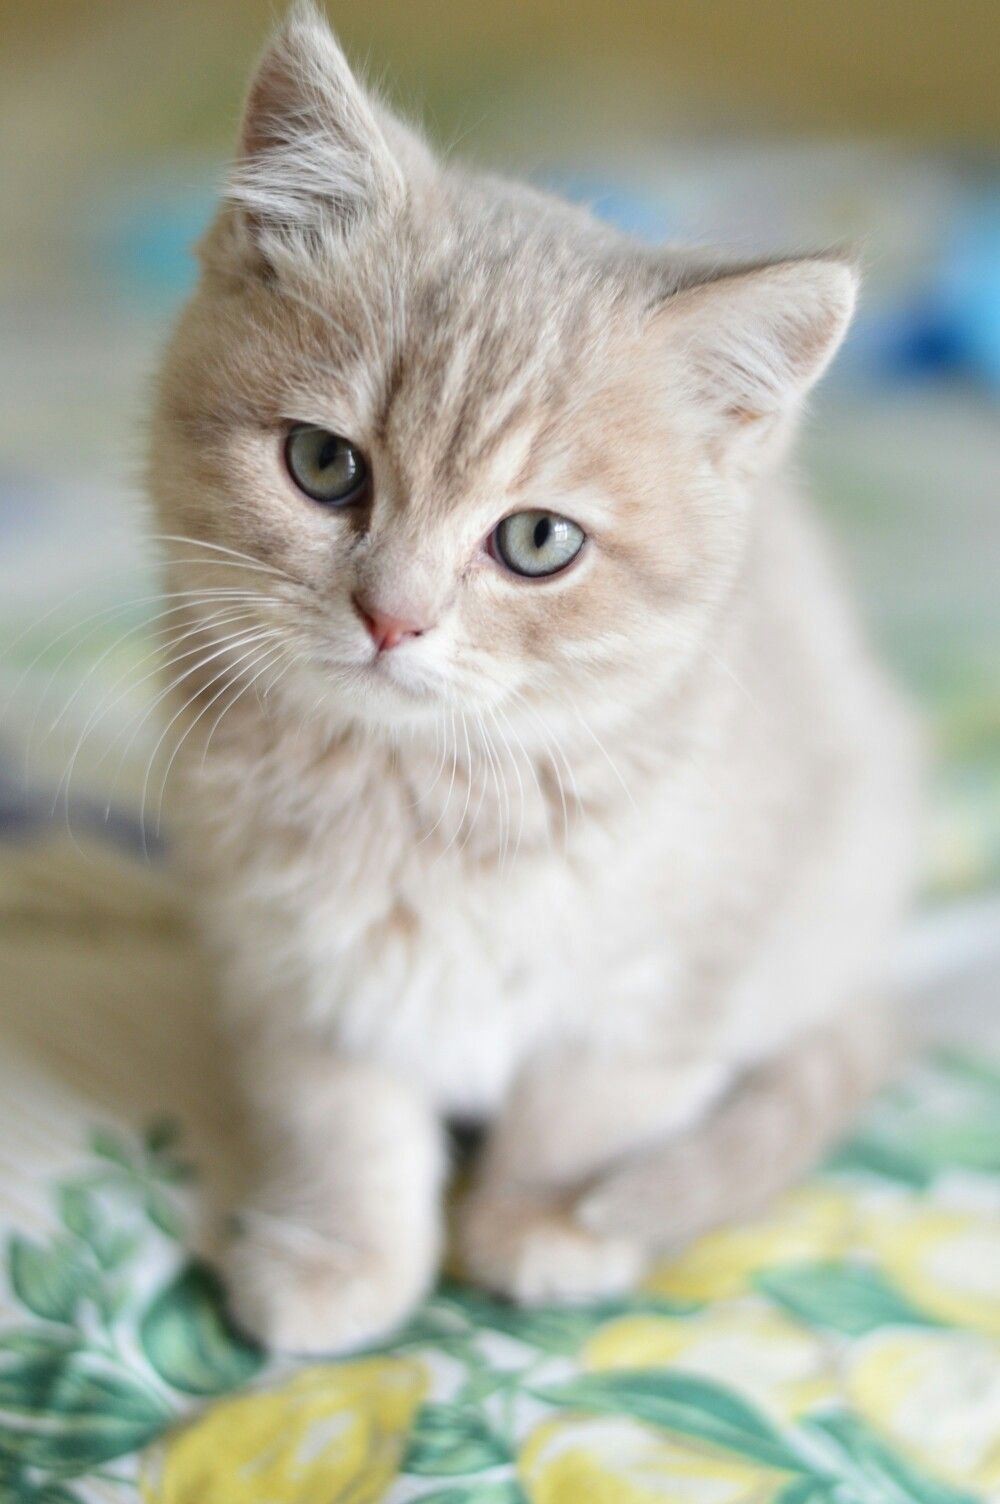 Is your cat peeing in house? Learn how to stop a cat from